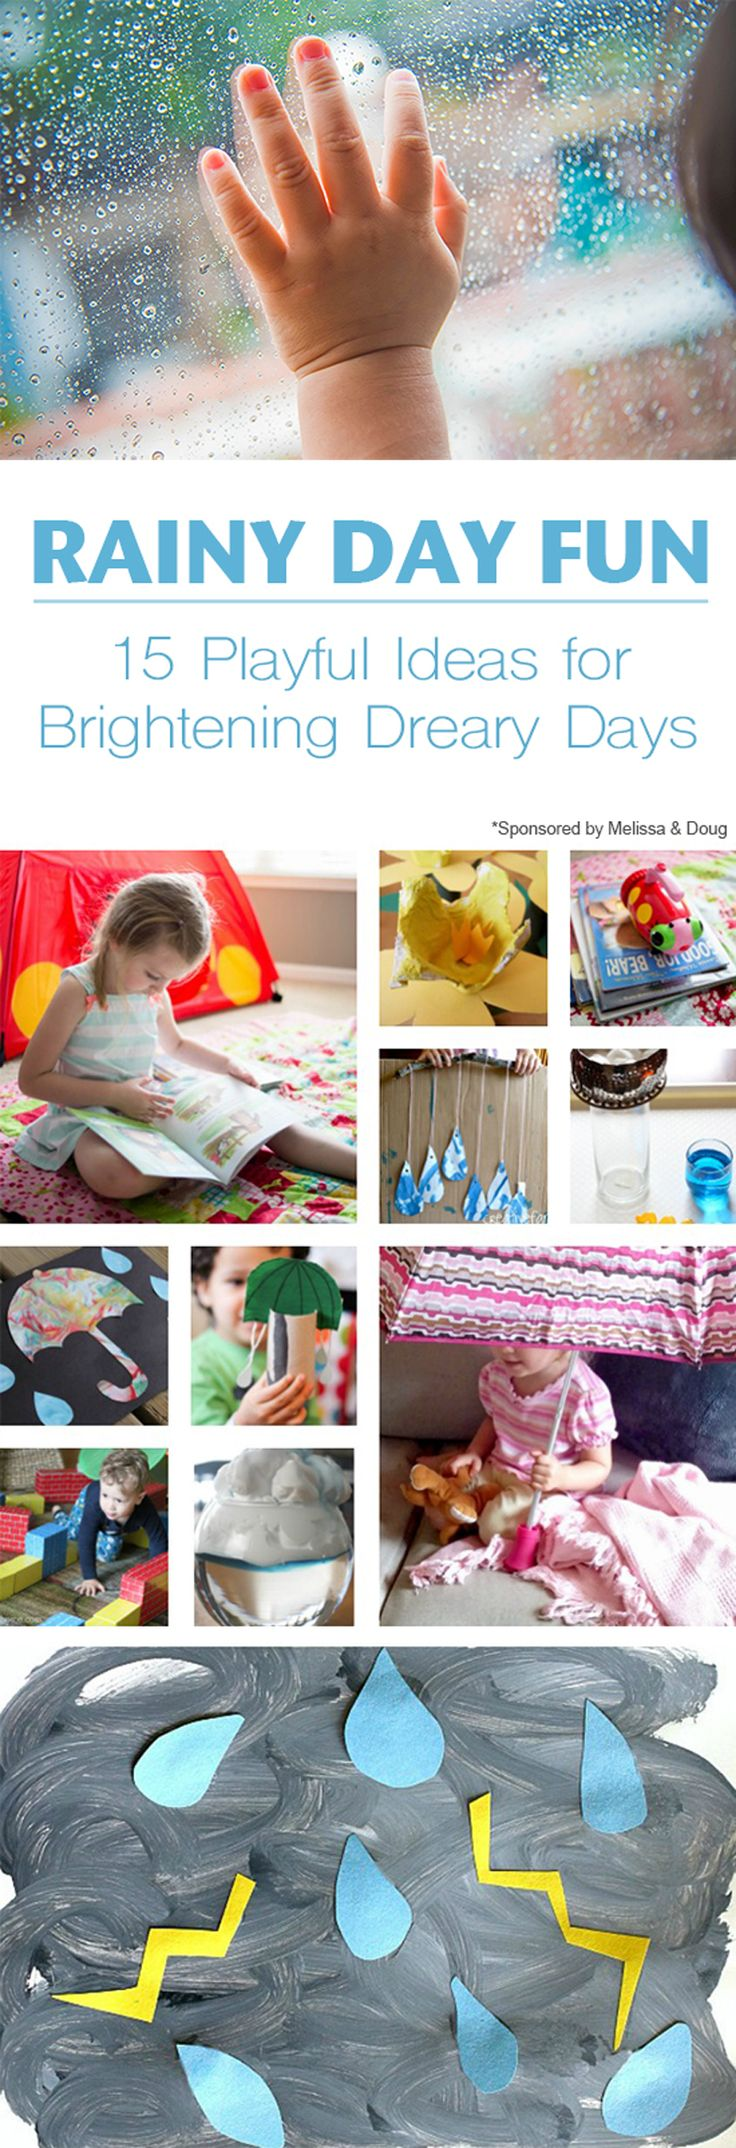 15 Indoor Rainy Day Activities for Kids